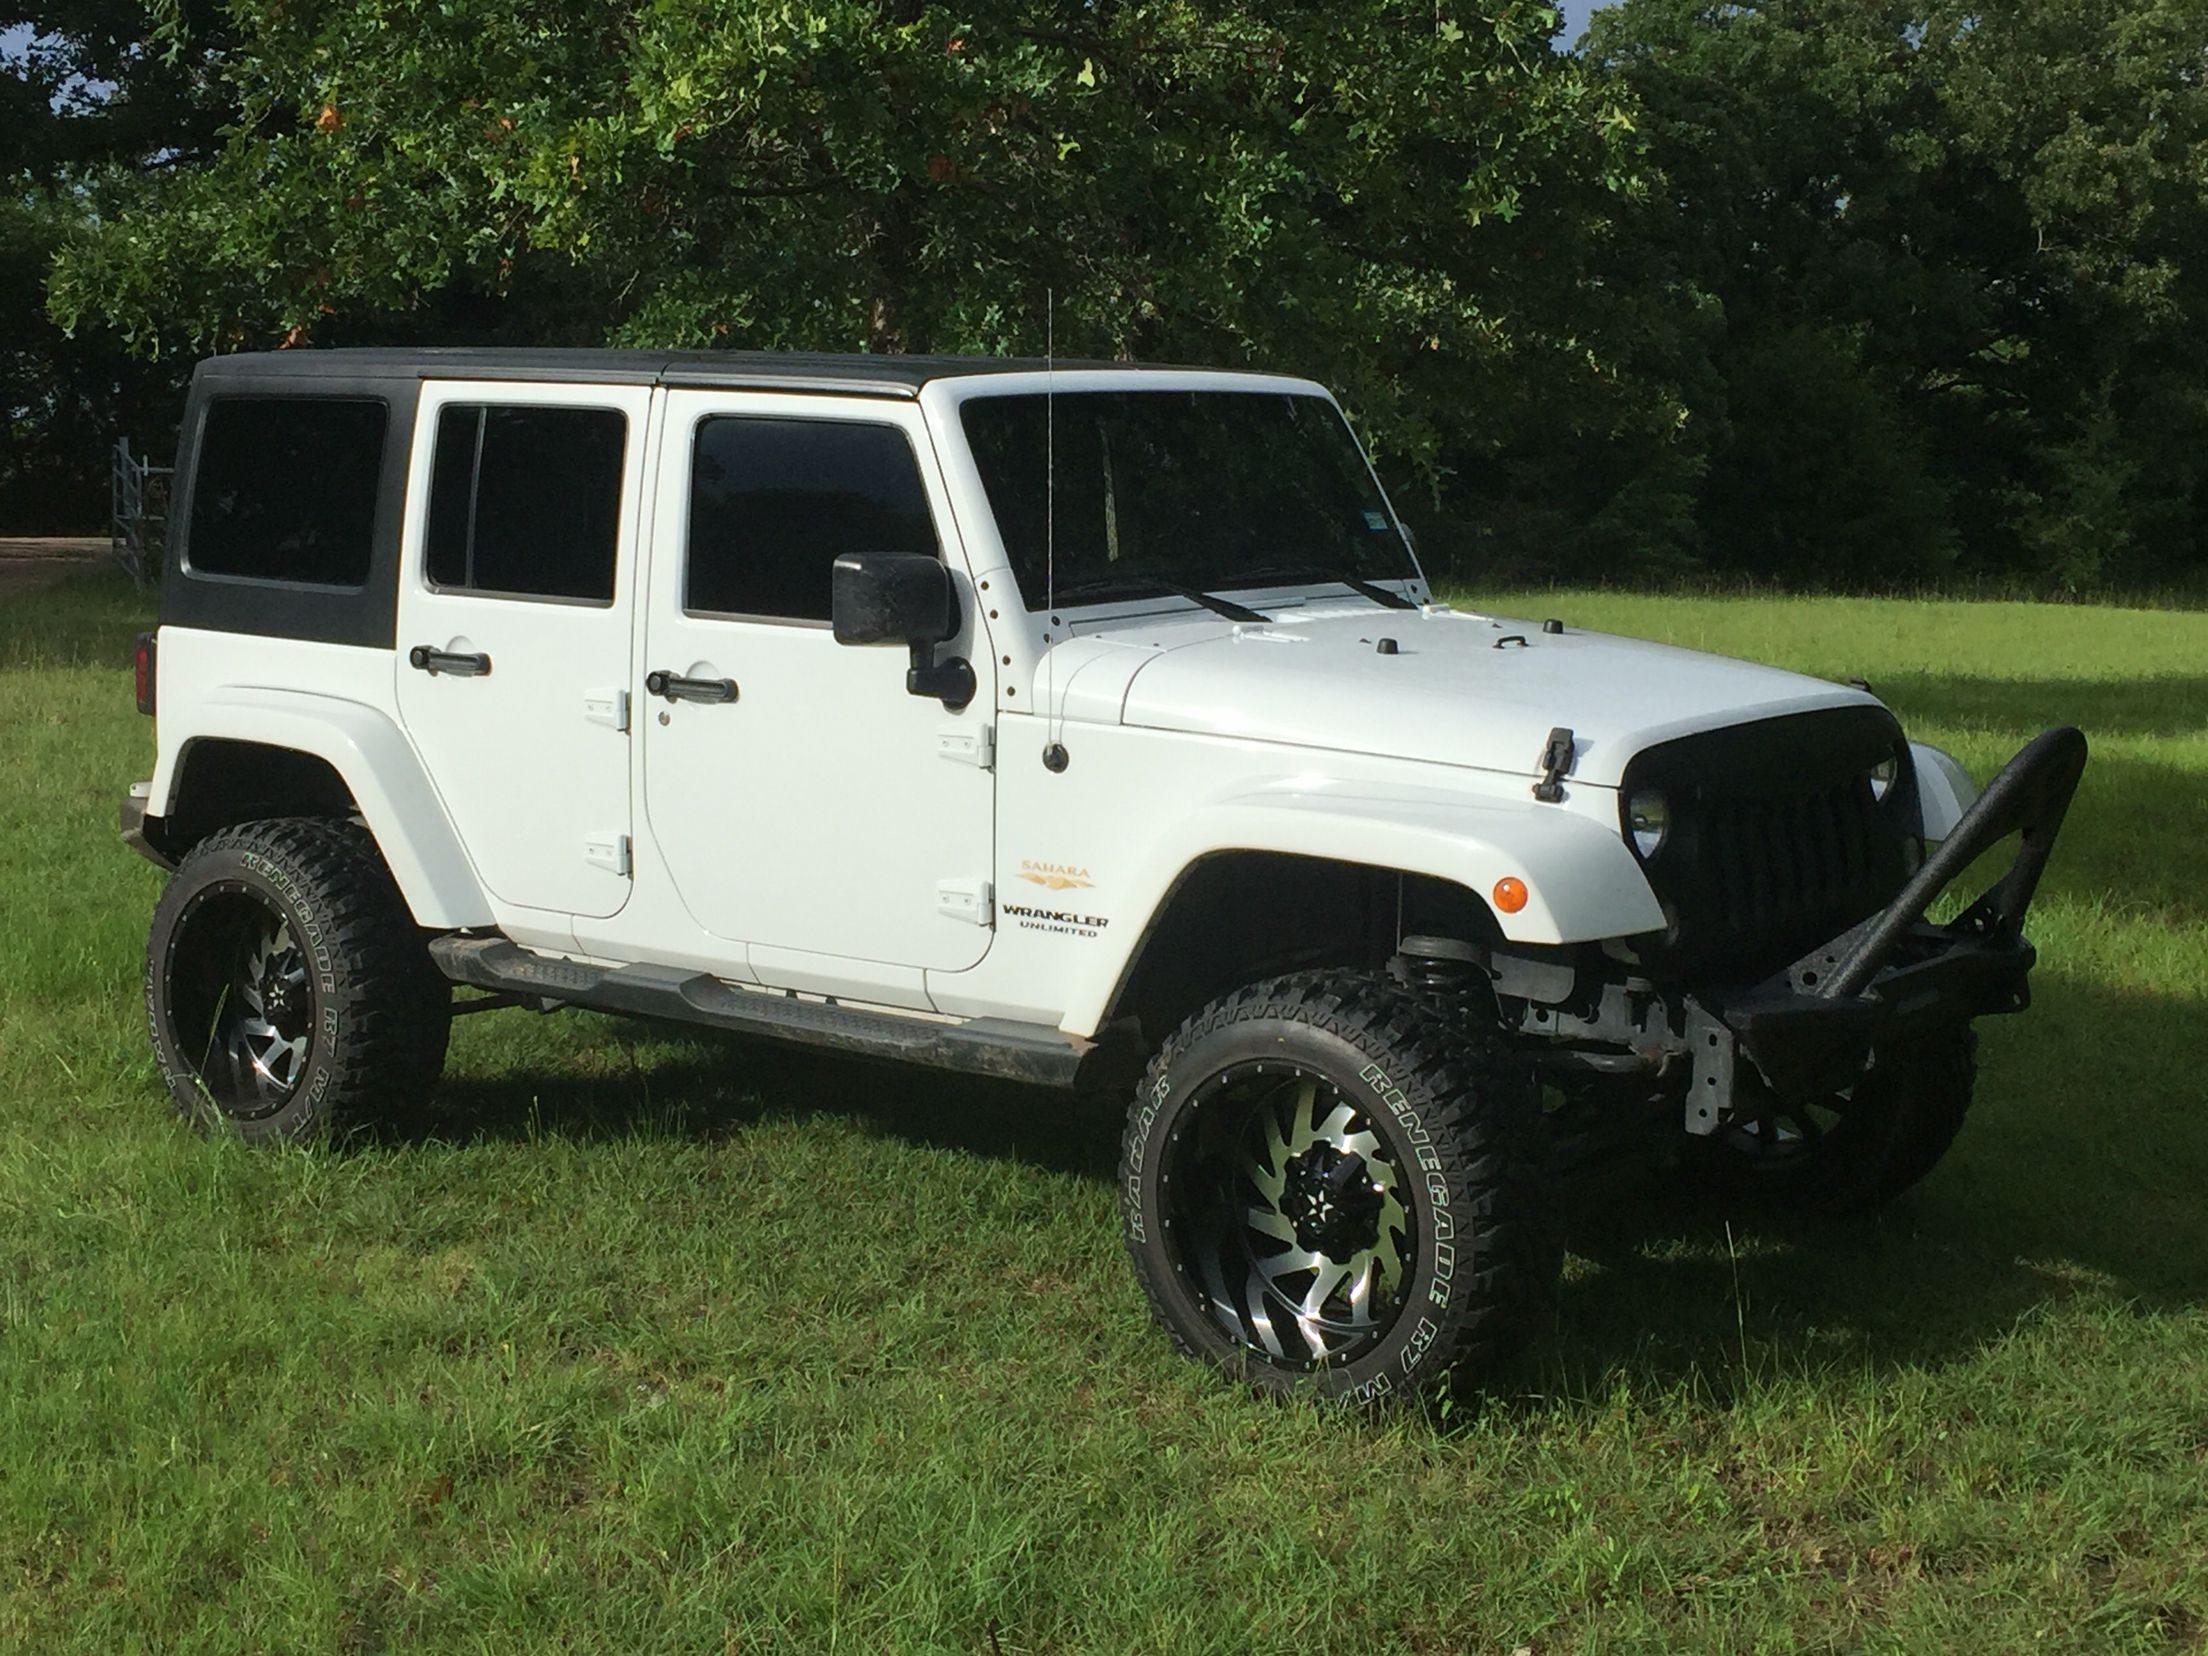 Jk With 4 Lift 12 X 20 Wheels And 33 Mt Tires Jeep Truck Jeep 20 Wheels